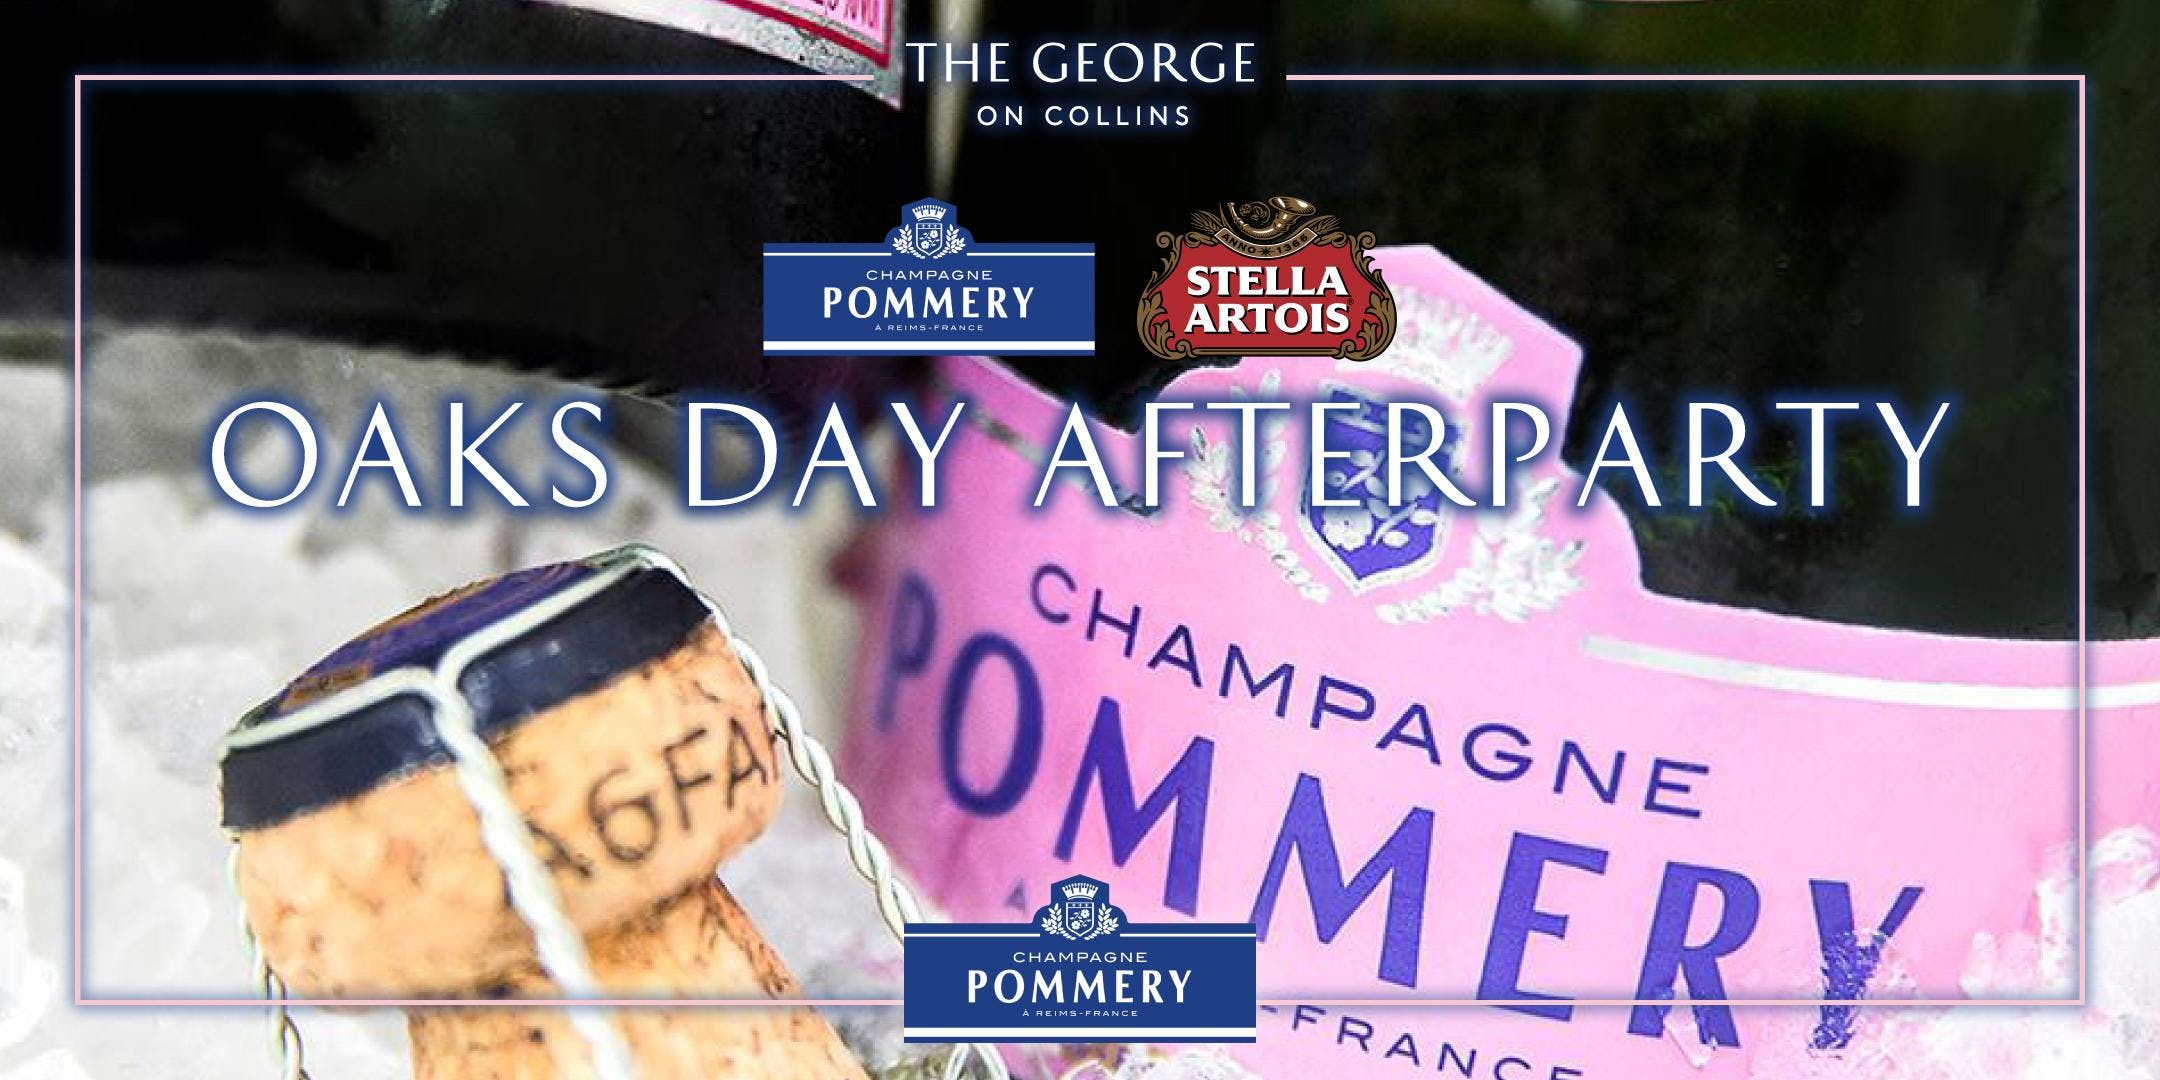 Oaks day transport afterparty with Pommery & Stella